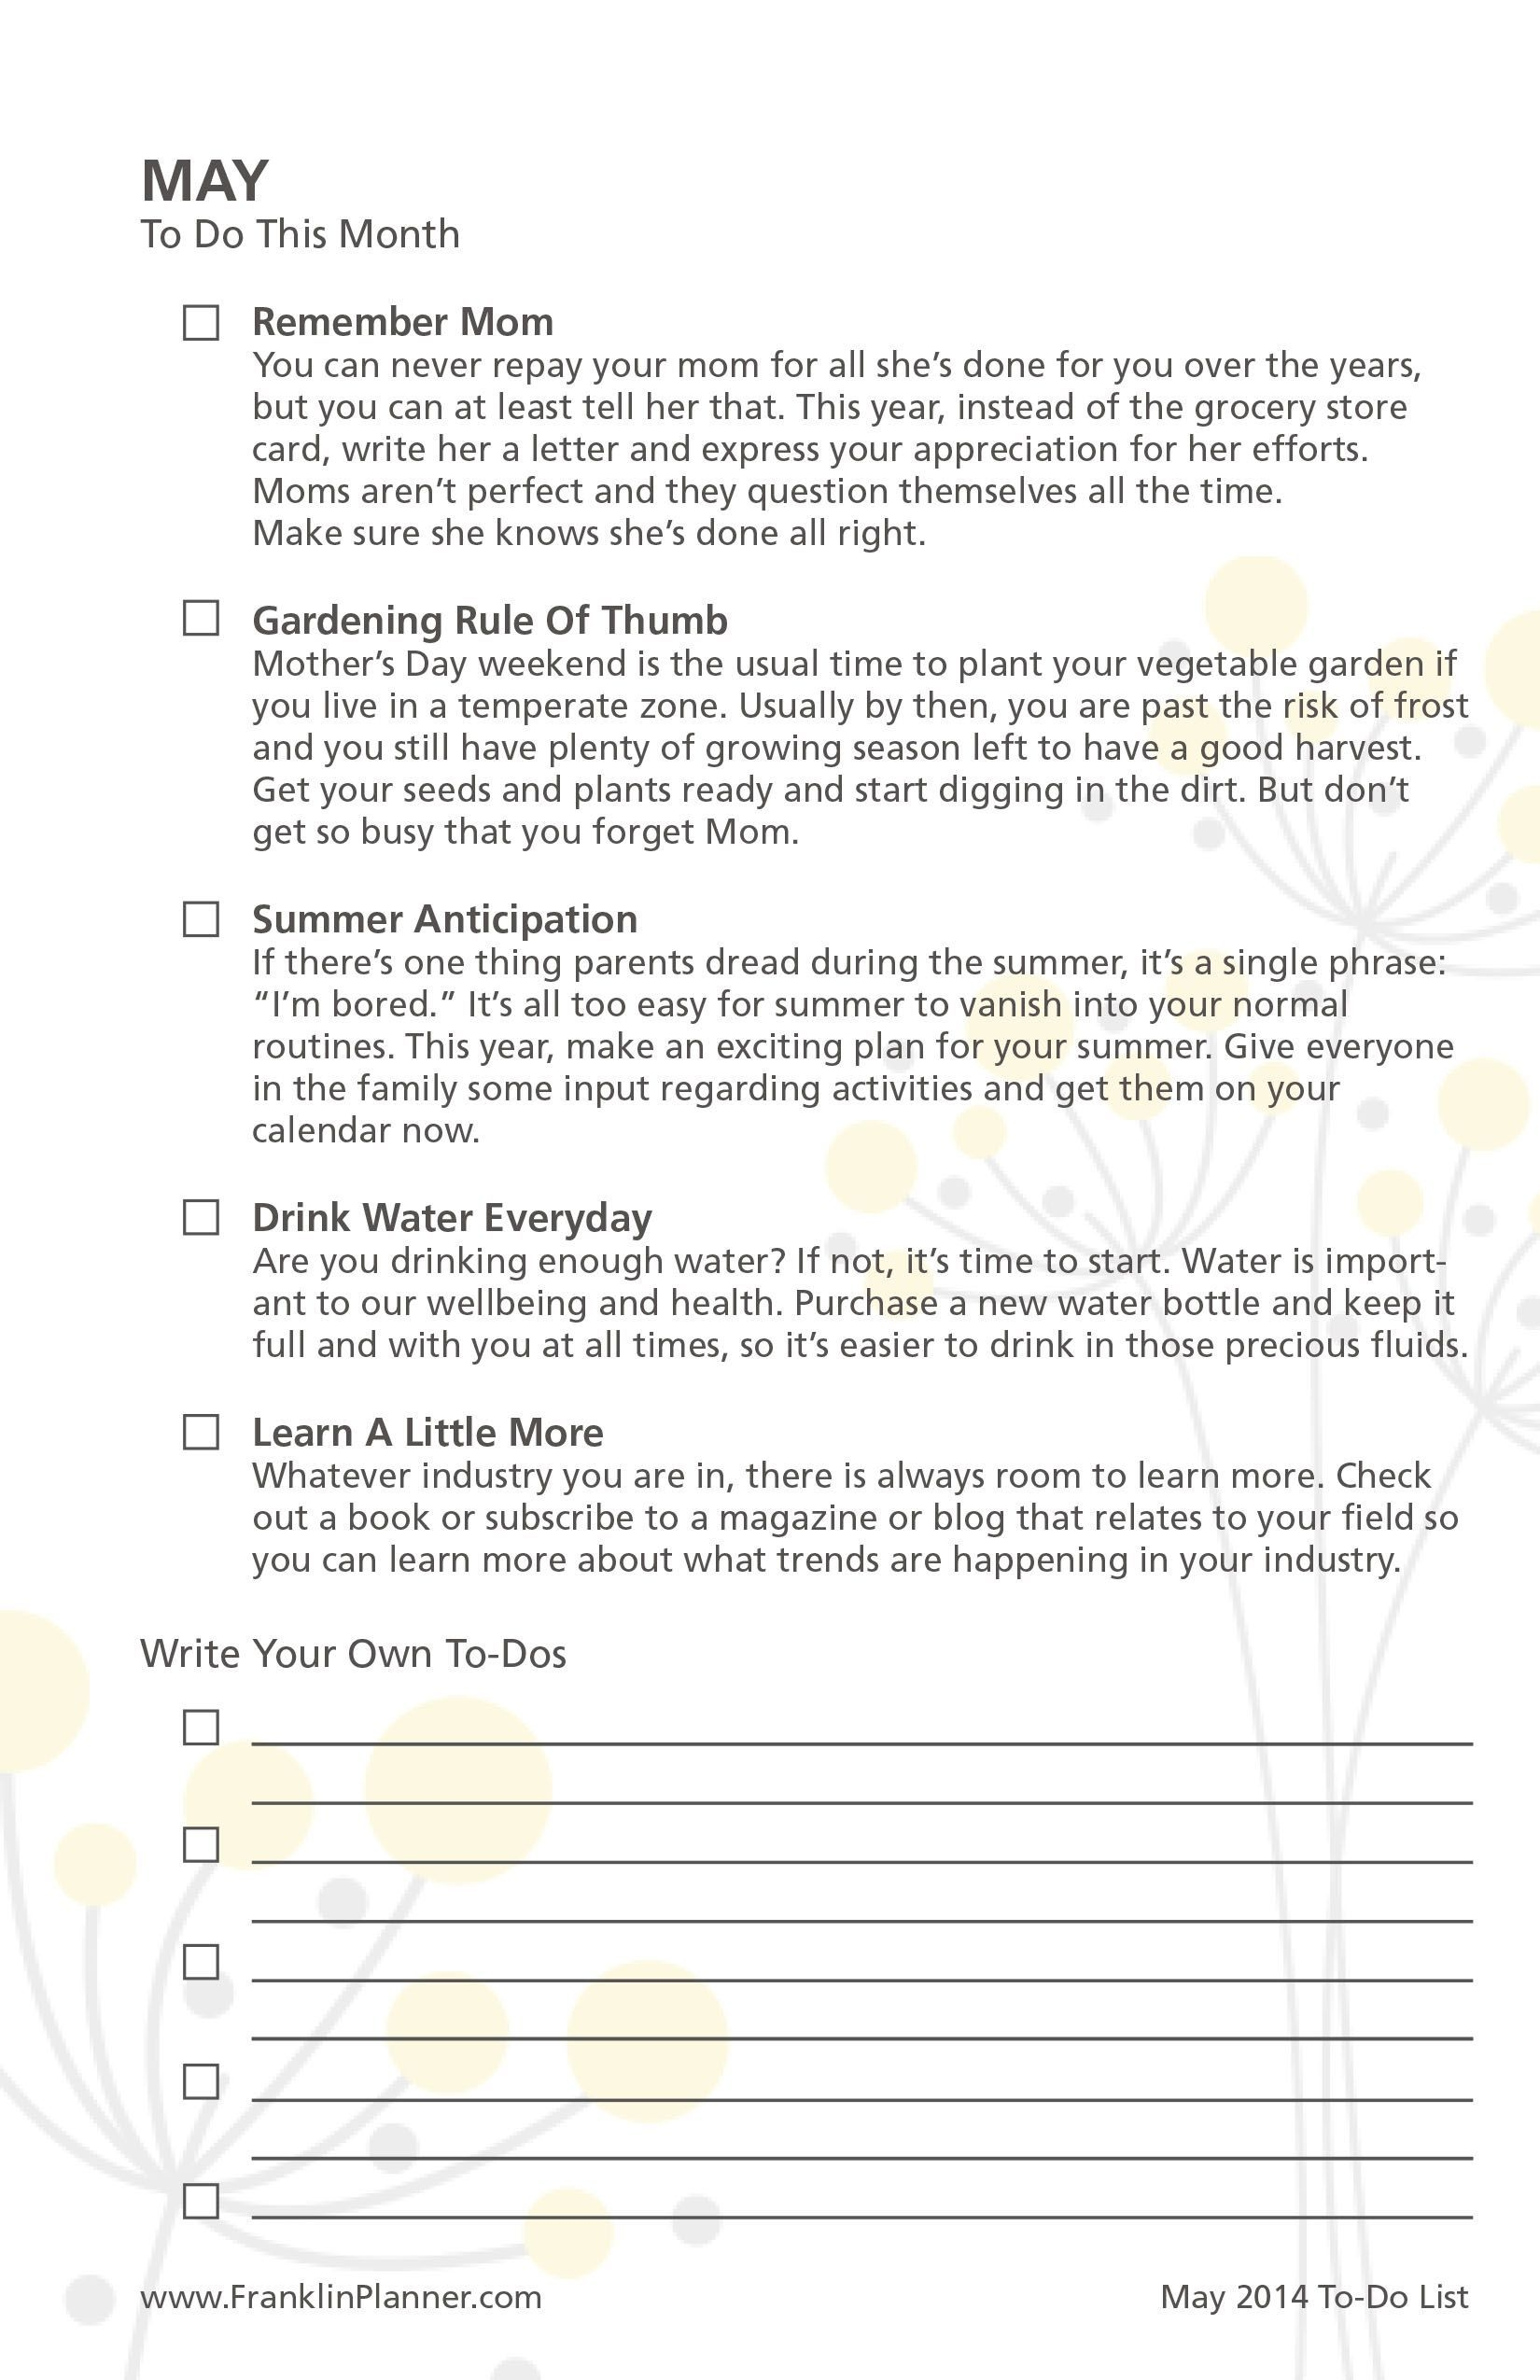 may 2014 to do checklist | to do checklist, franklin planner